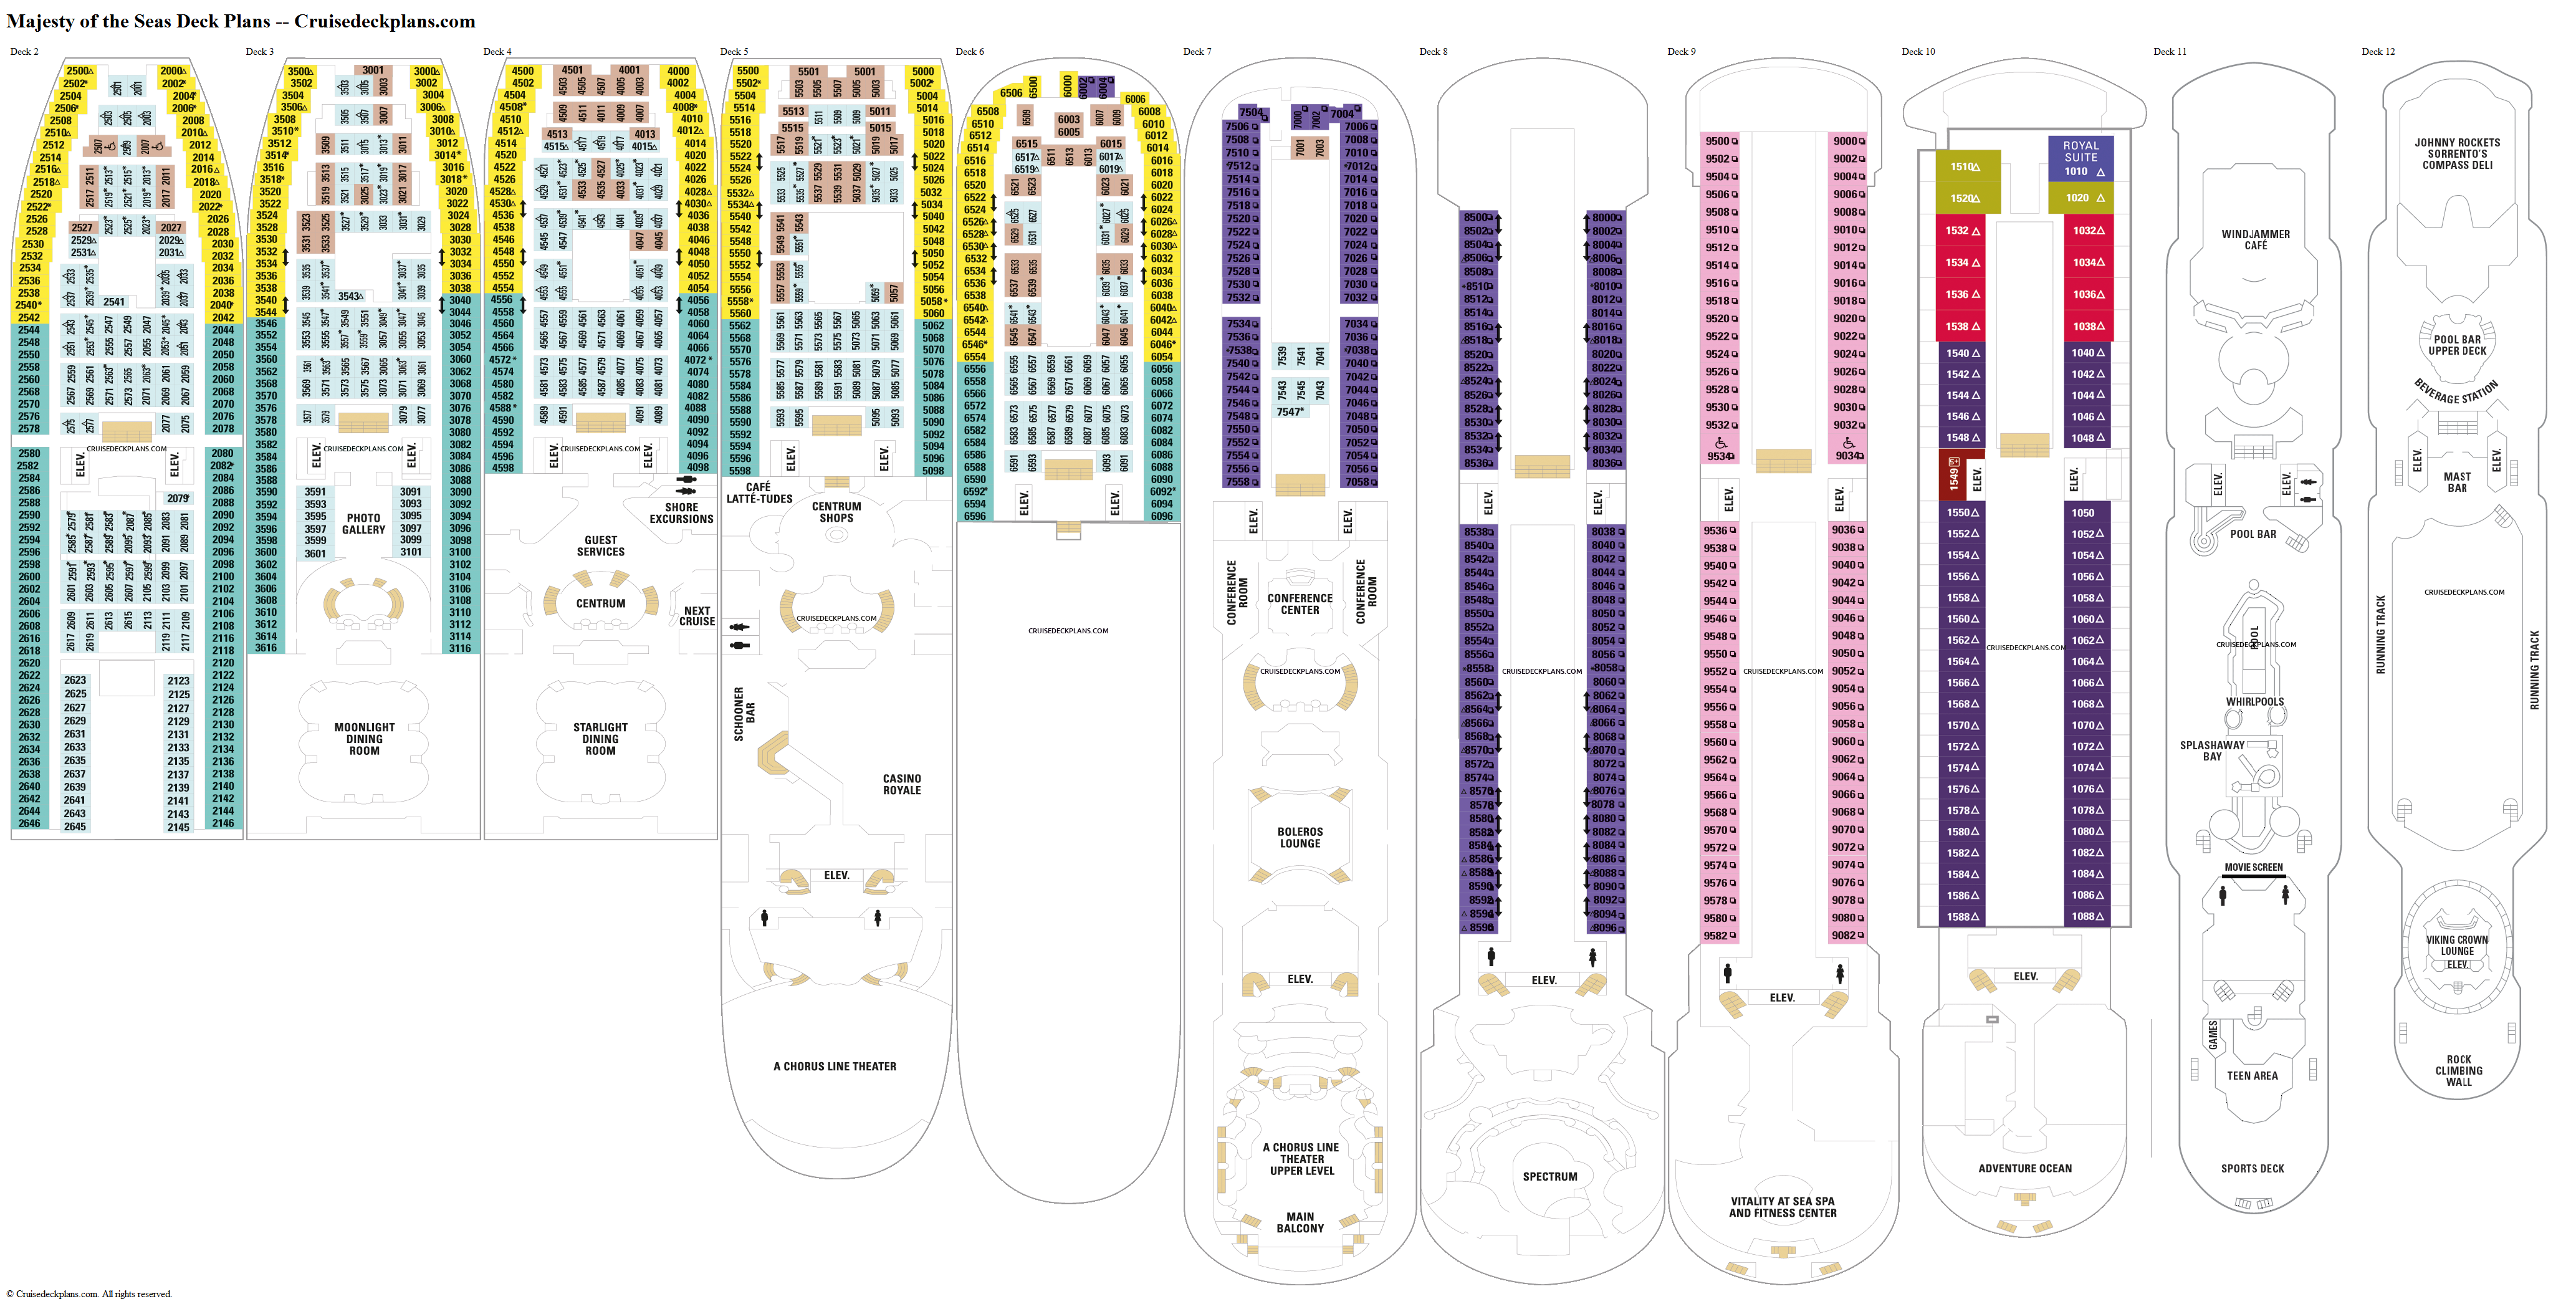 Majesty of the Seas deck plans image